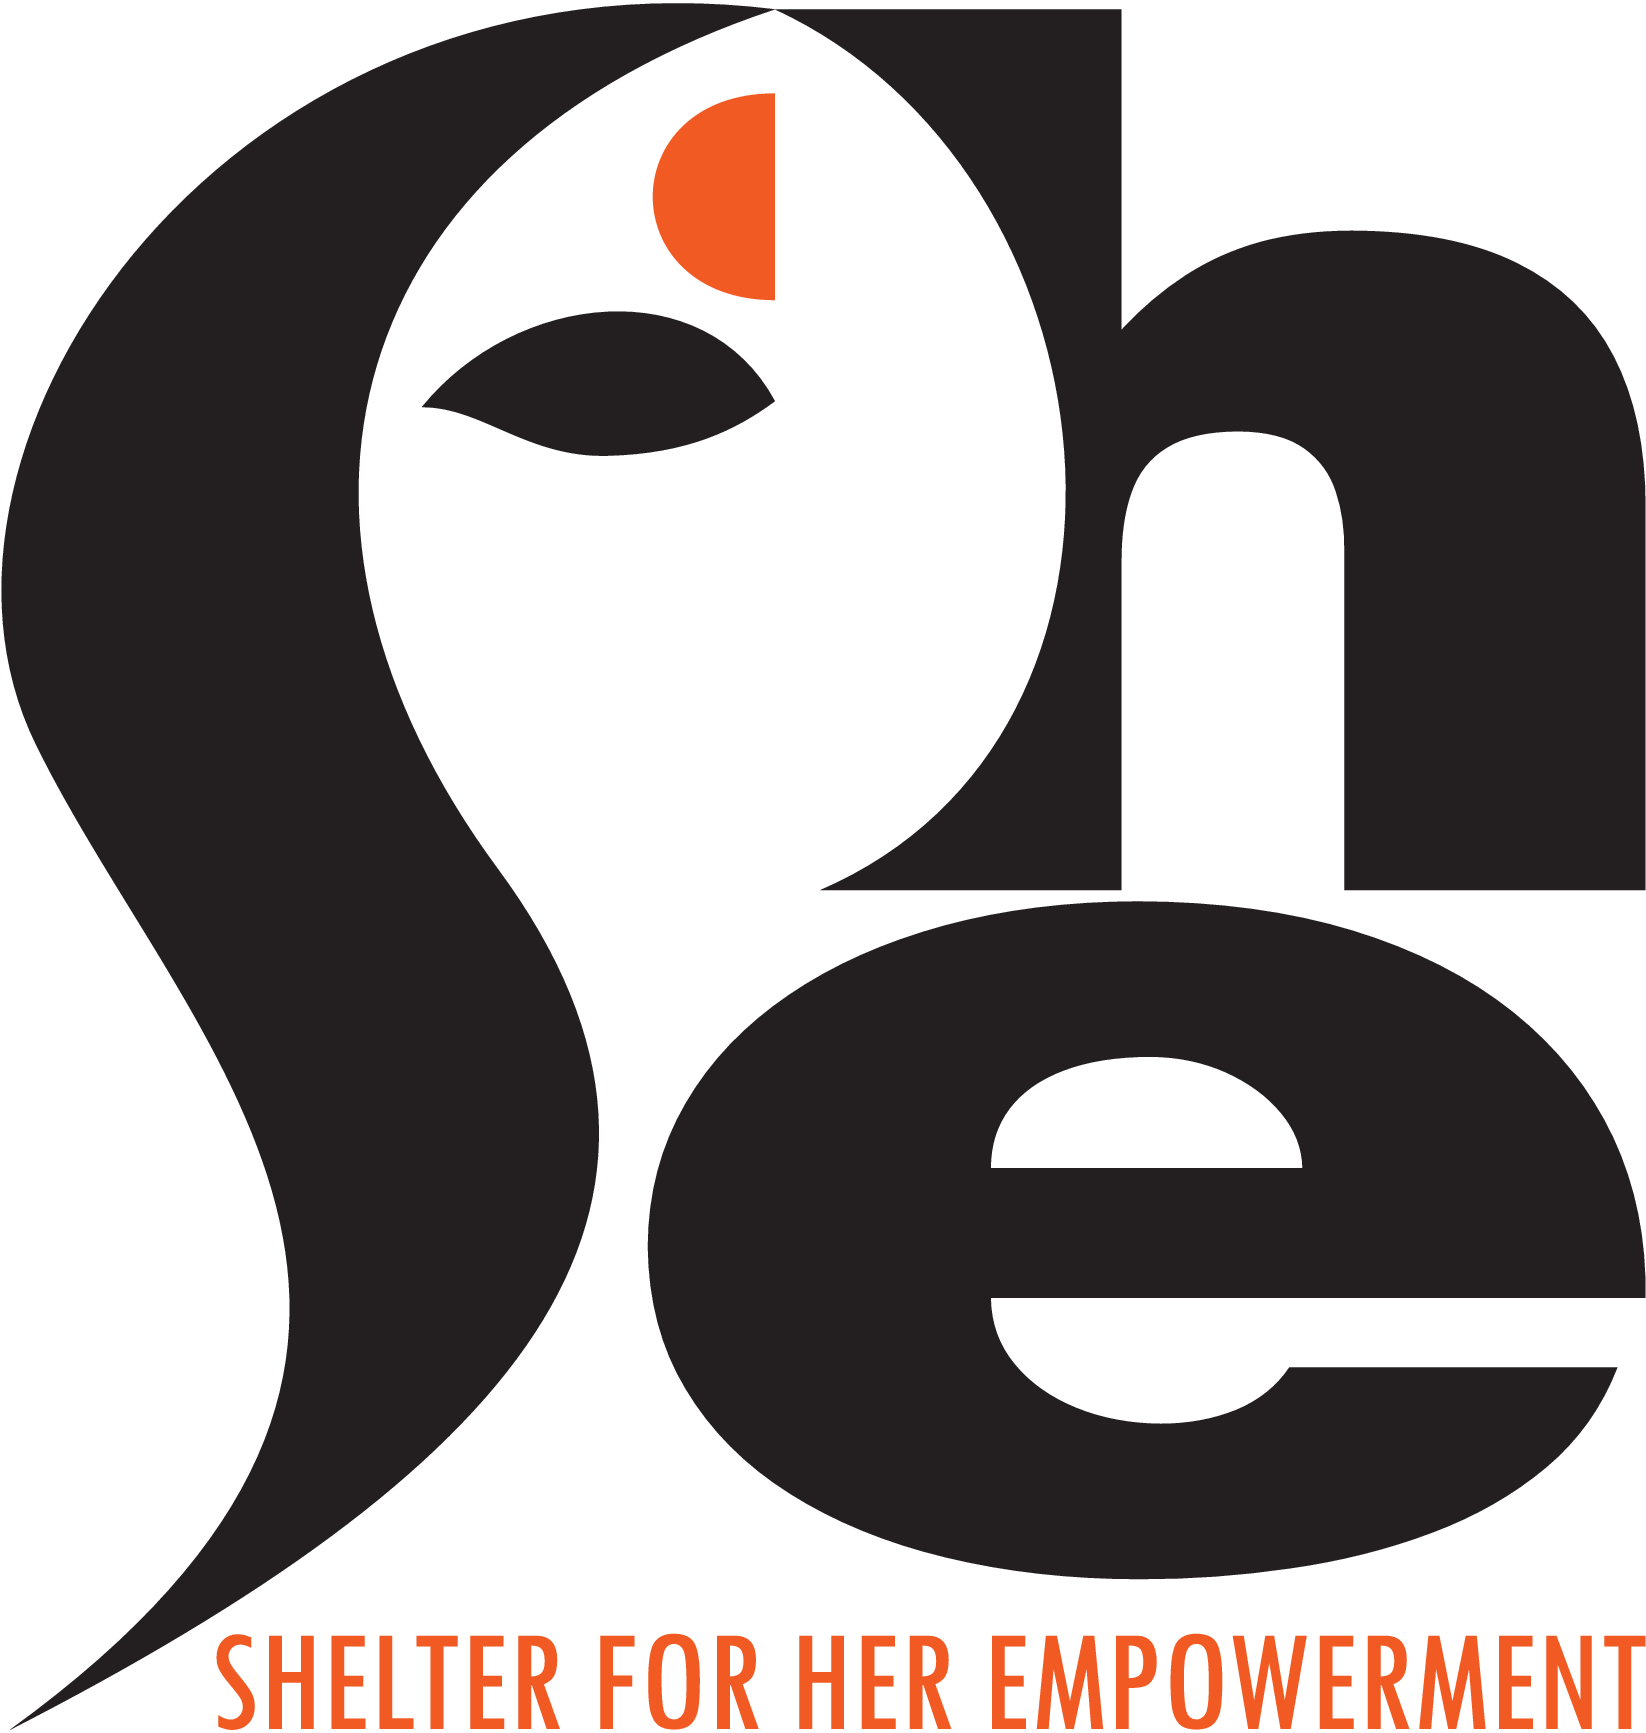 Shelter for Her Empowerment (SHE)